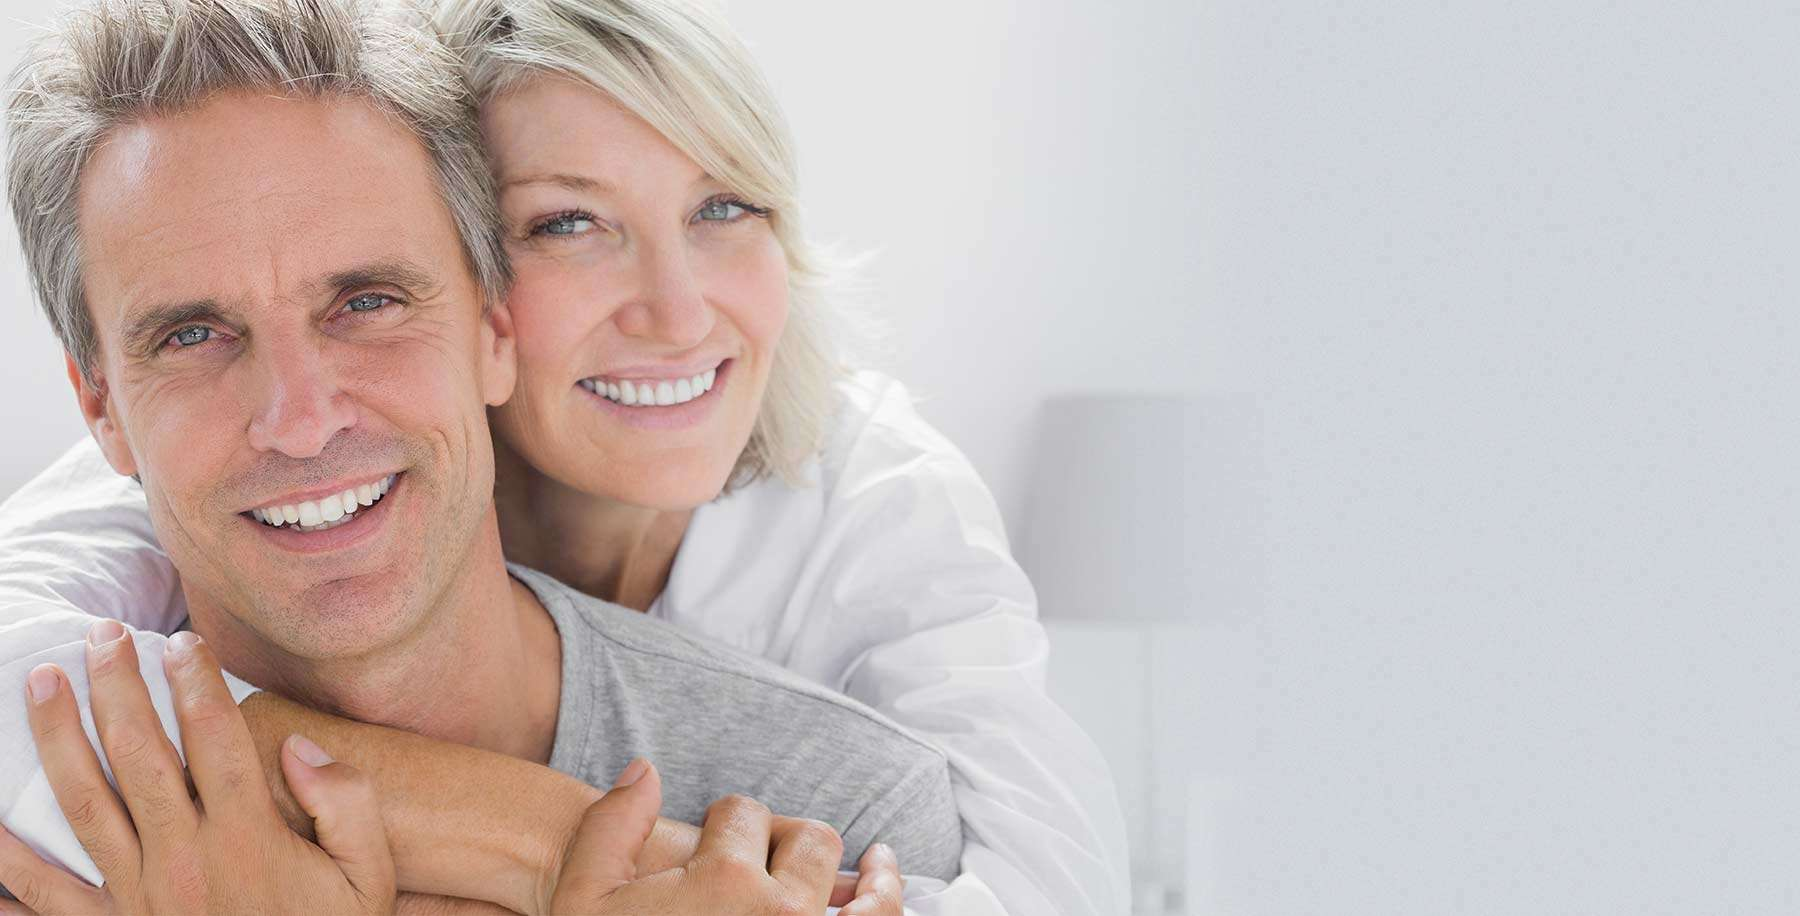 Dental Implants with Abutments and Crowns